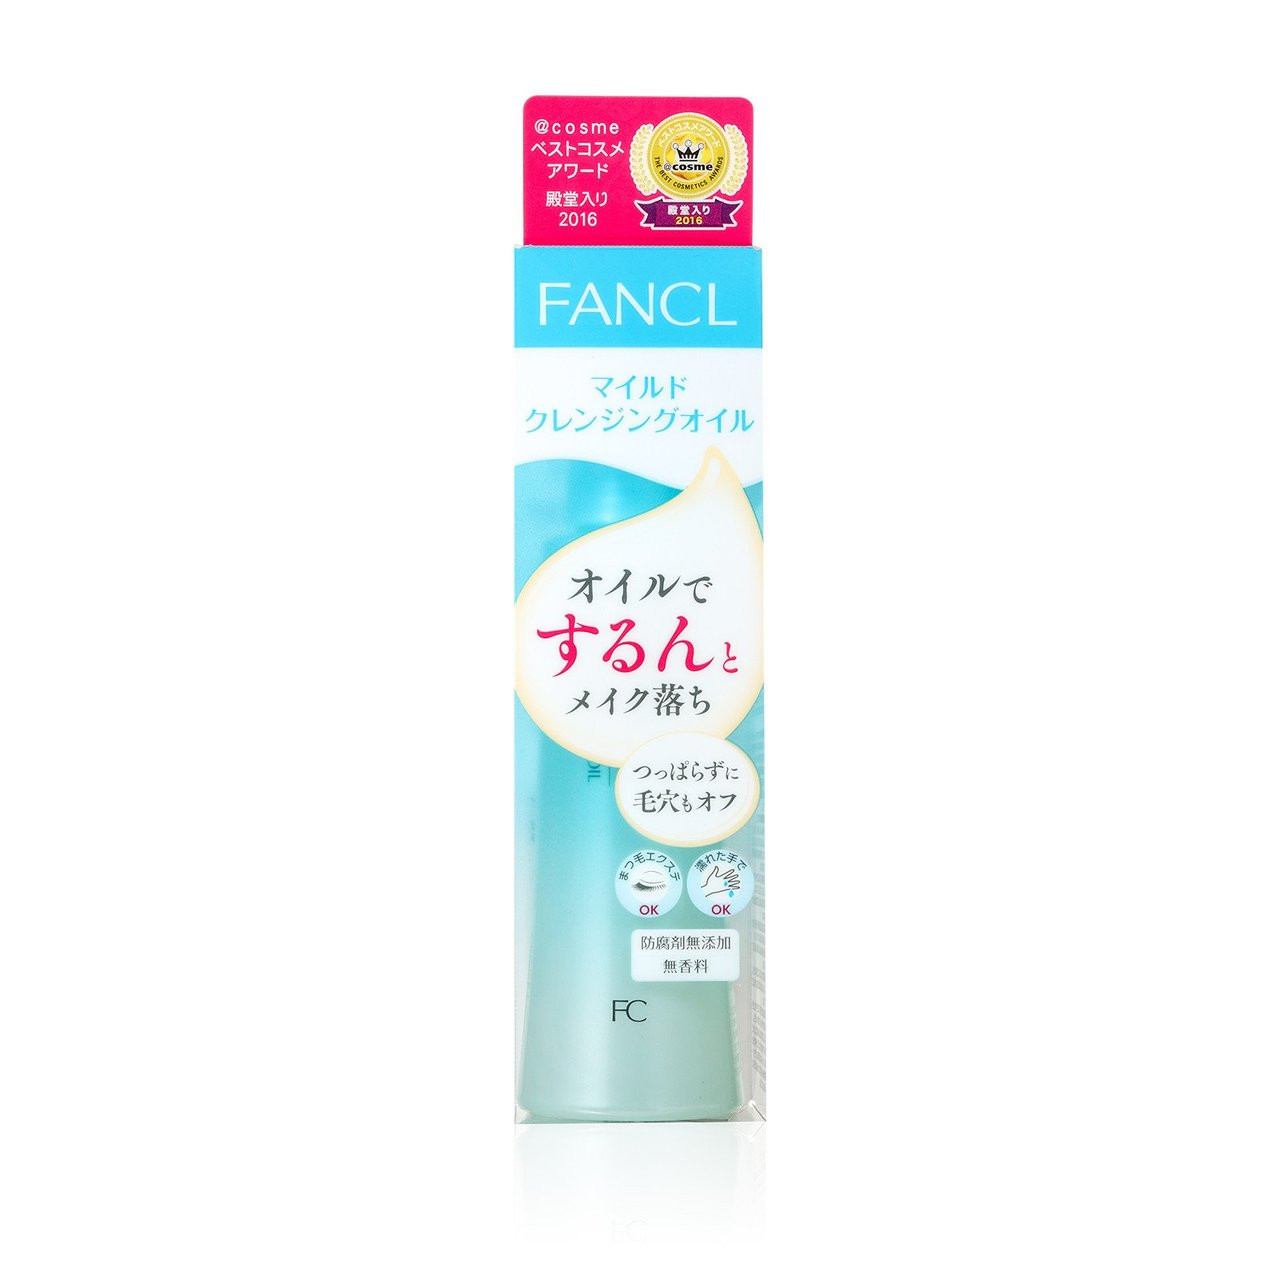 FANCL HAND CREAM WHITENING AND ANTI AGING CARE, Health